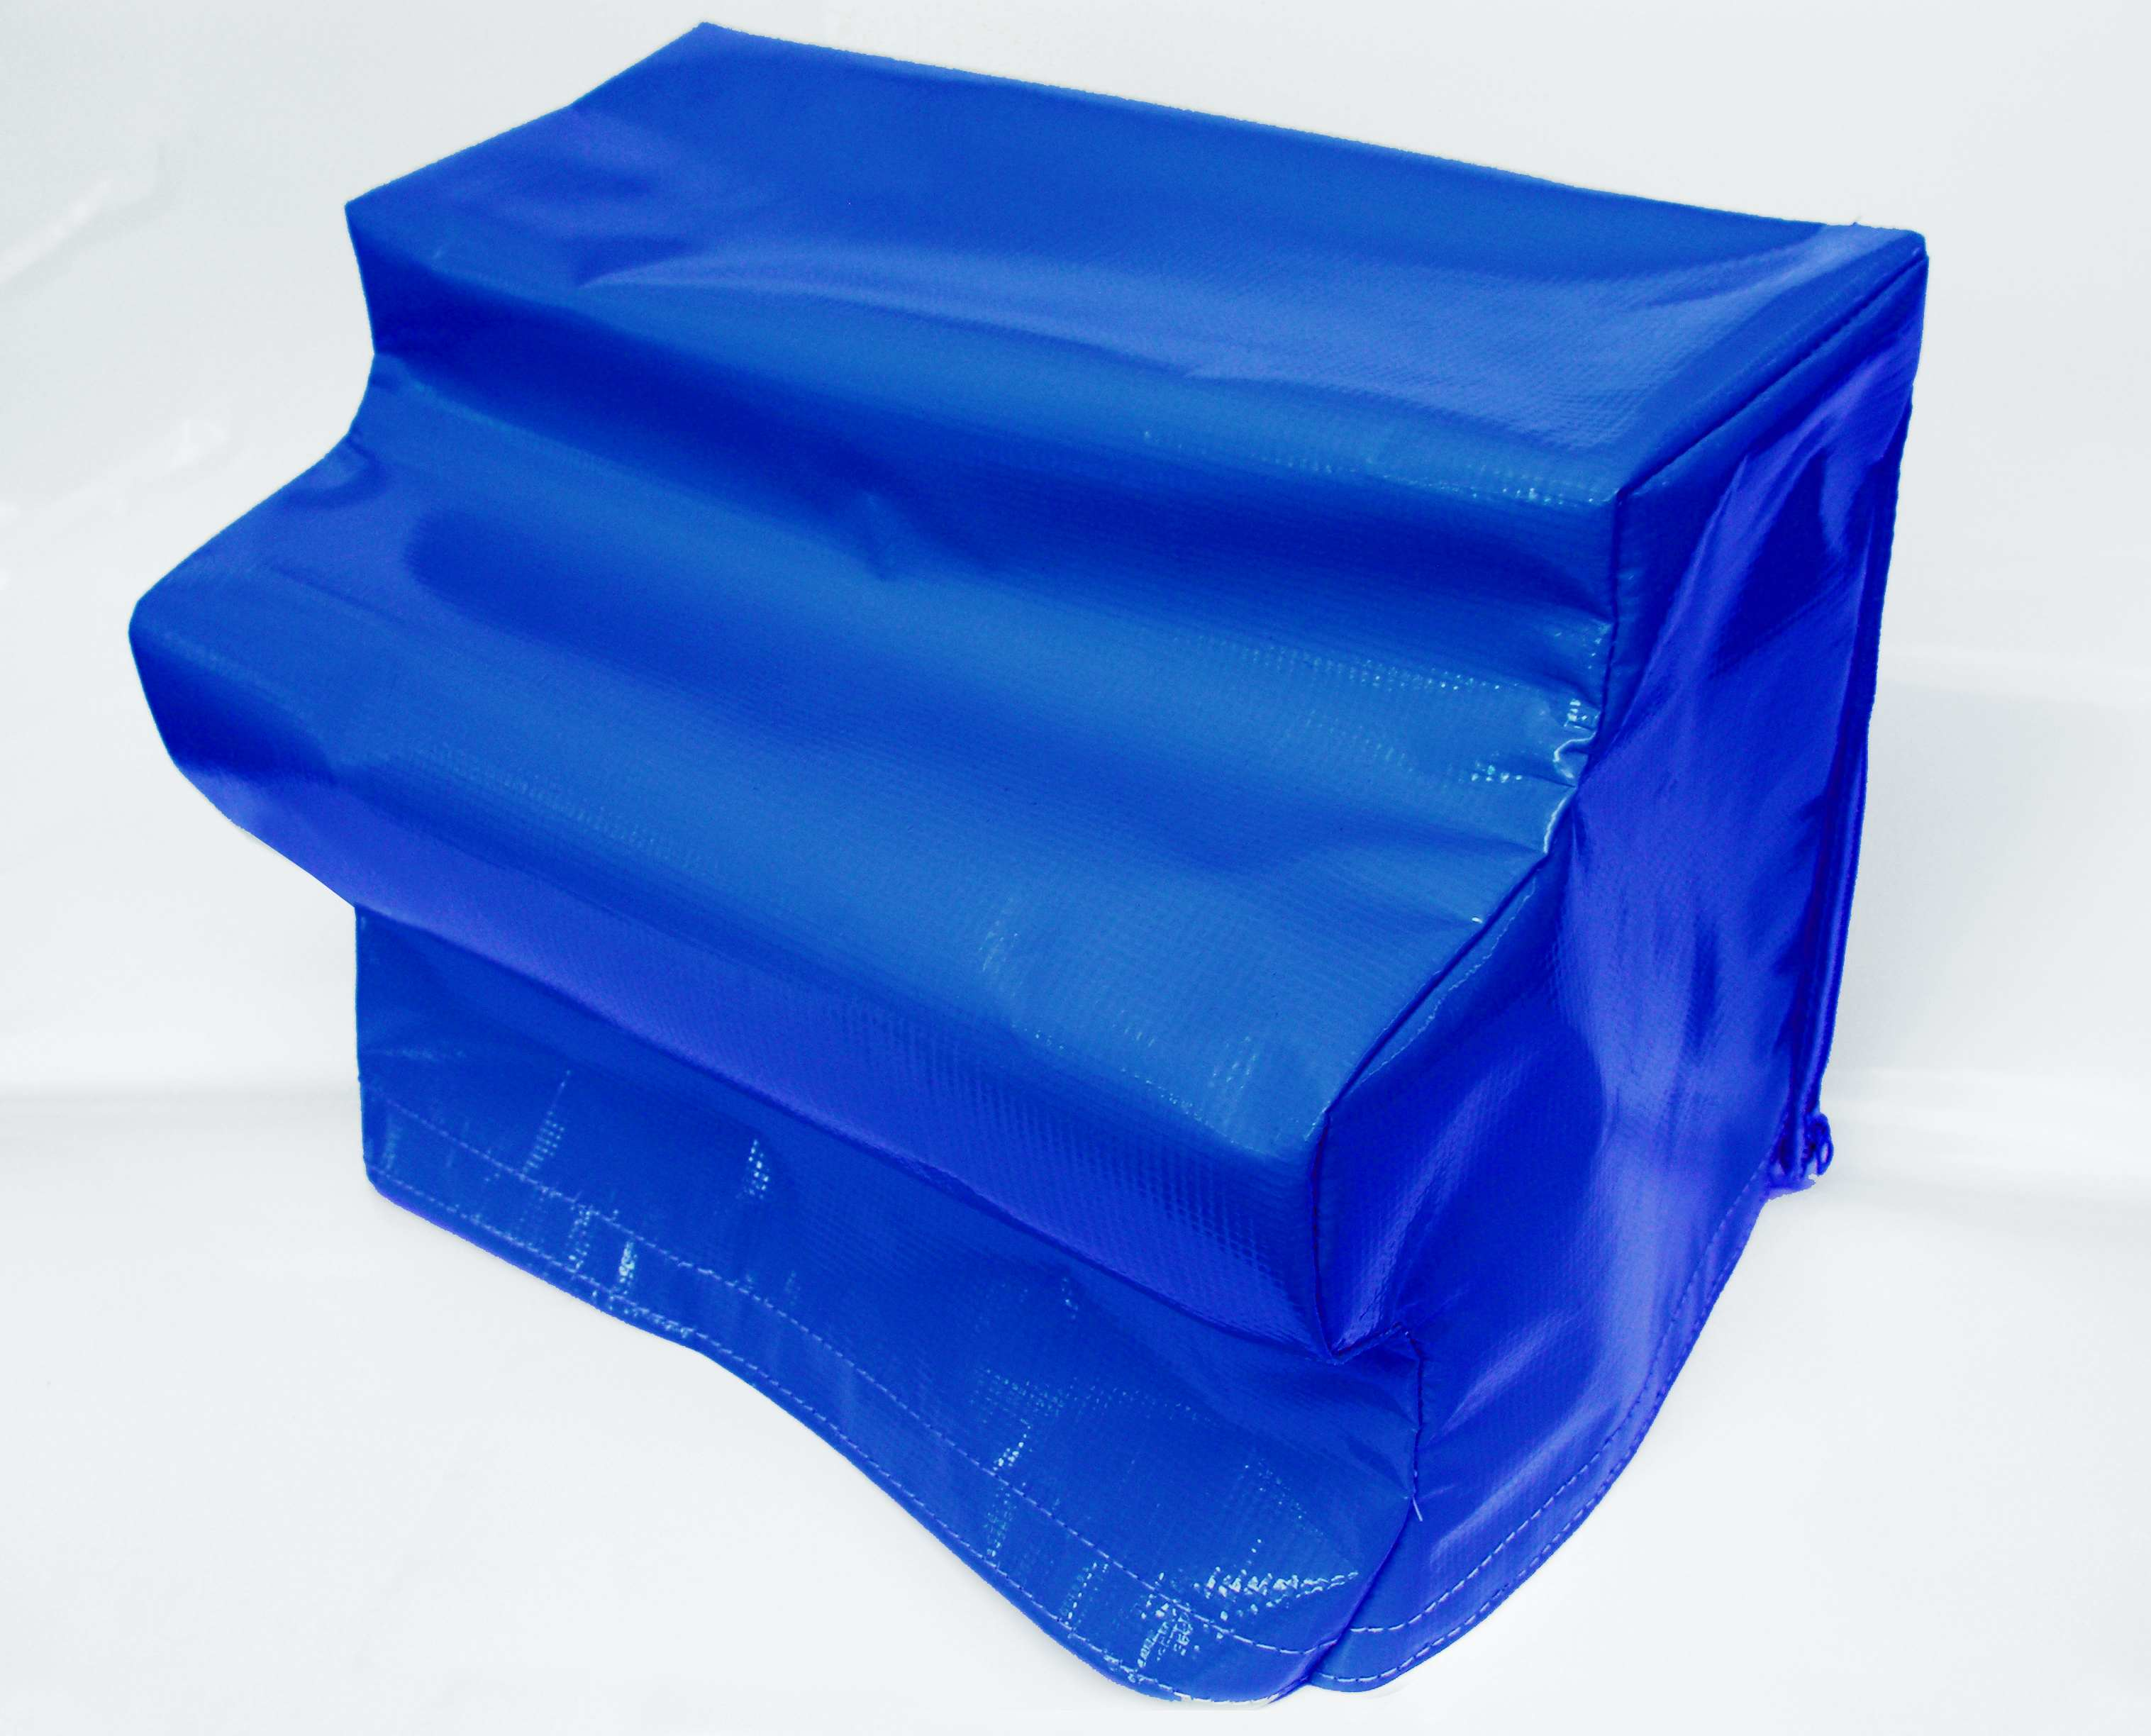 "VINYL COATED NYLON EQUIPMENT COVERS 36"" x 36"" x 36"""